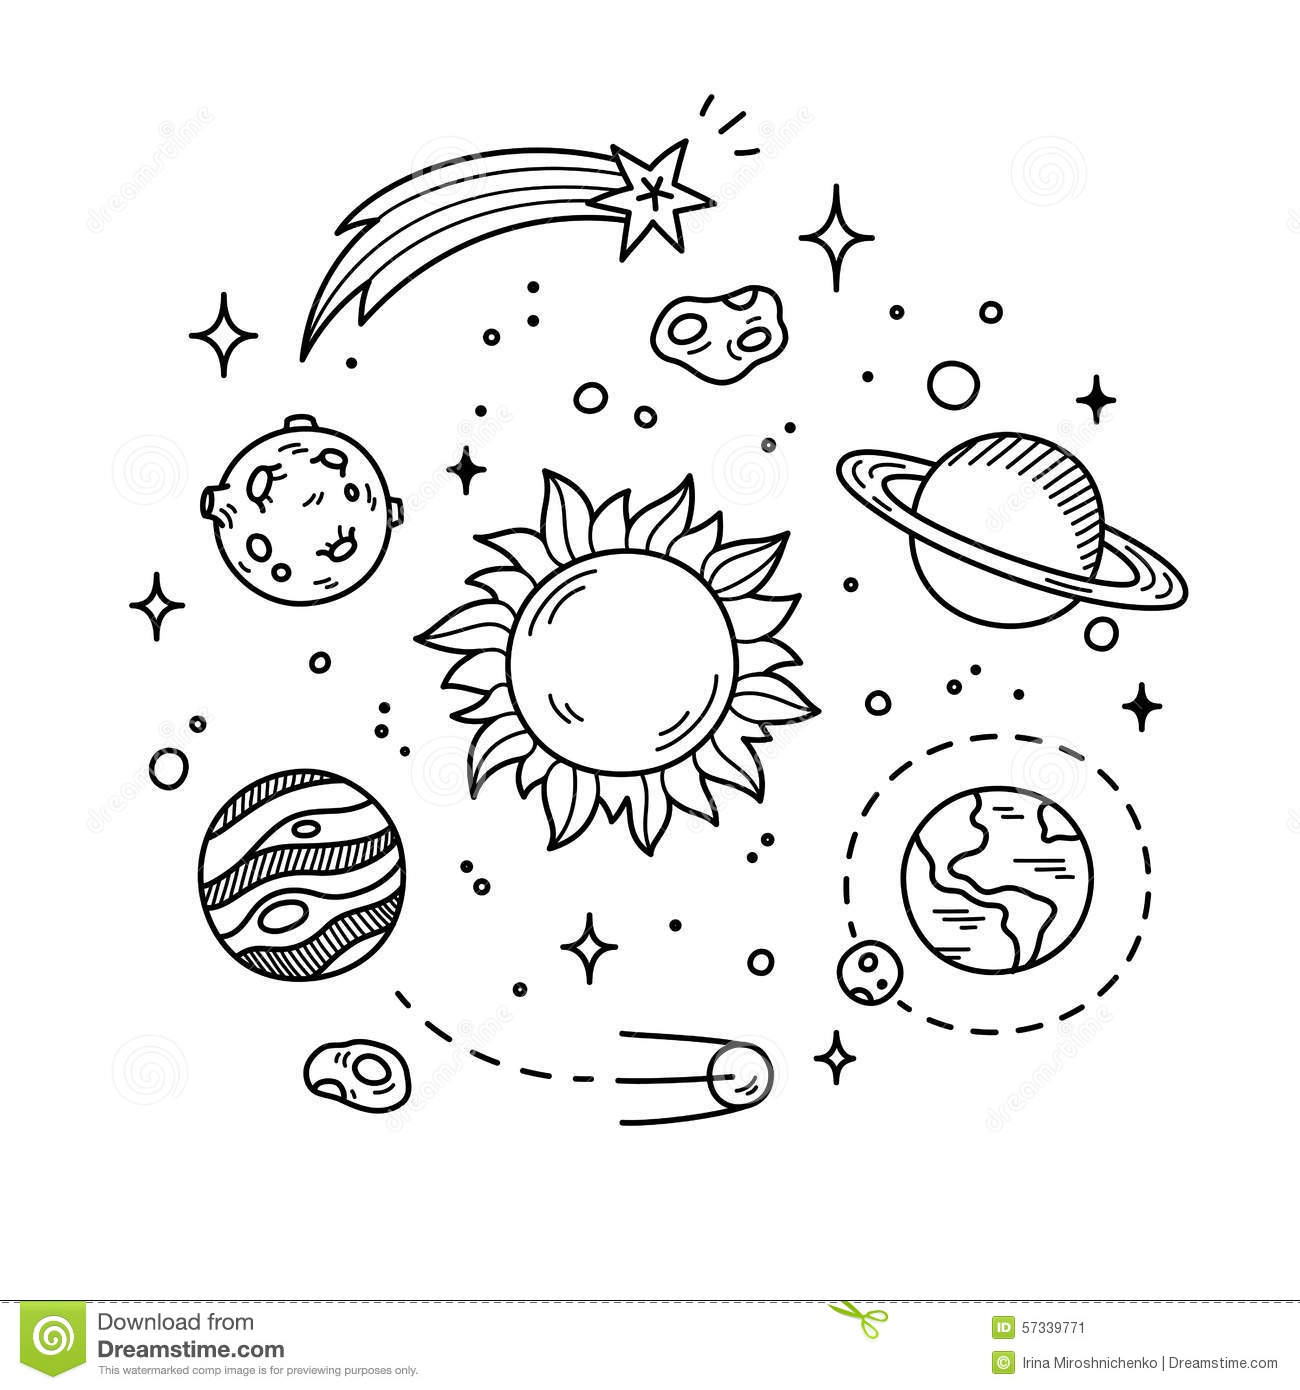 Space Doodle Illustration Stock Vector Image 57339771